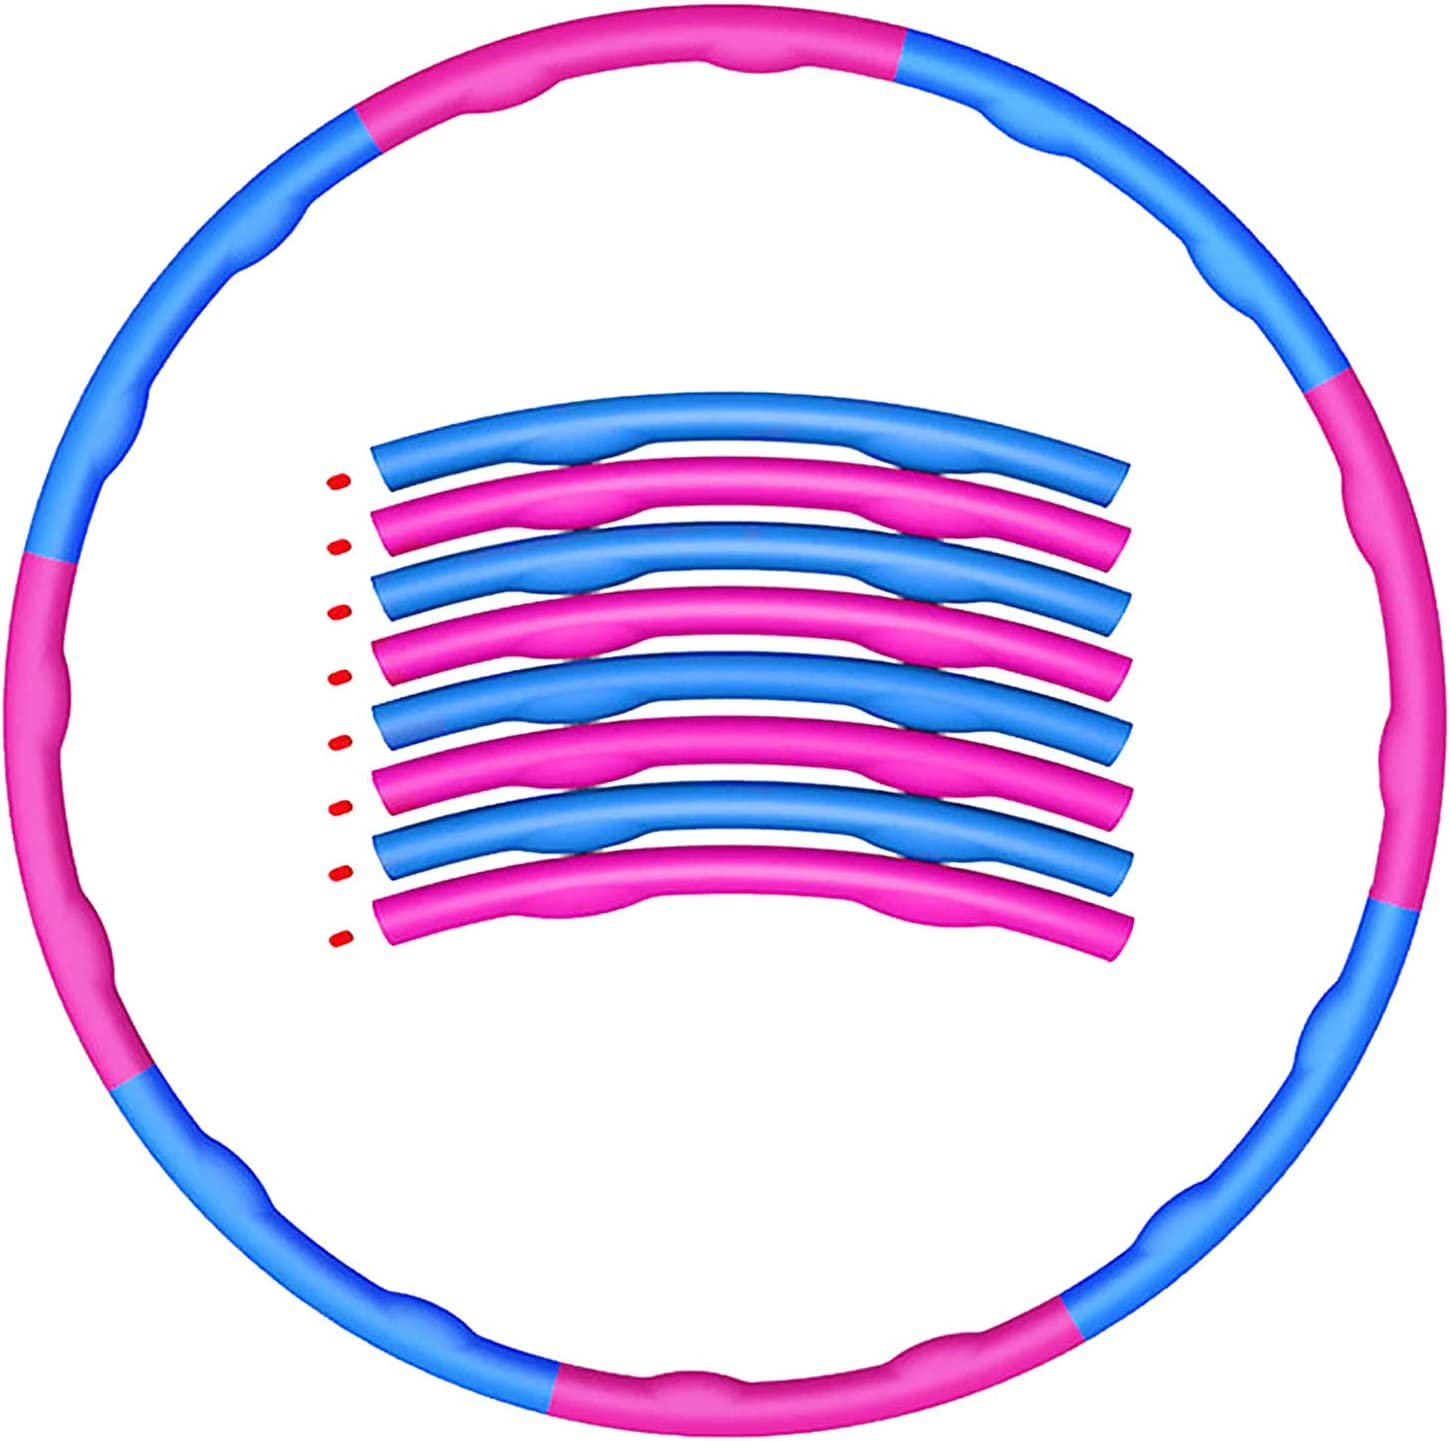 Weighted Foam Padded Fitness Hula Hoop Ring Fitness Hoola Hoop for Adult,Adult Folding Weight Loss Hoop,8 Section Detachable Design,Wave Groove Design